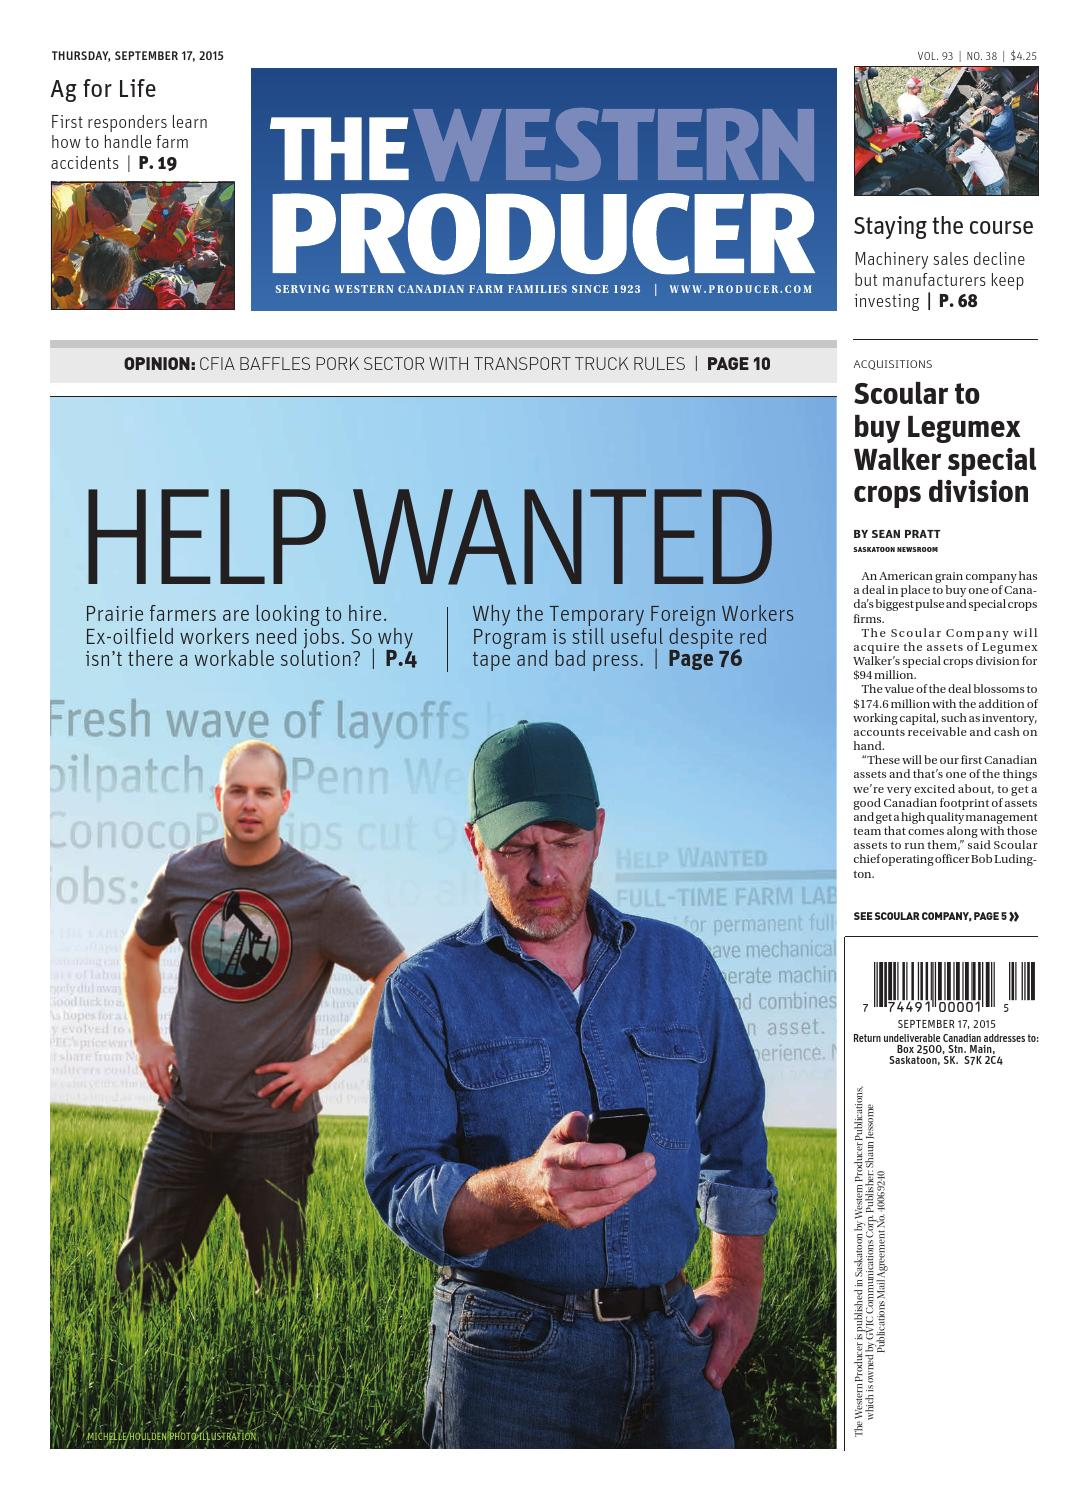 17a82874 The western producer september 17, 2015 by The Western Producer - issuu